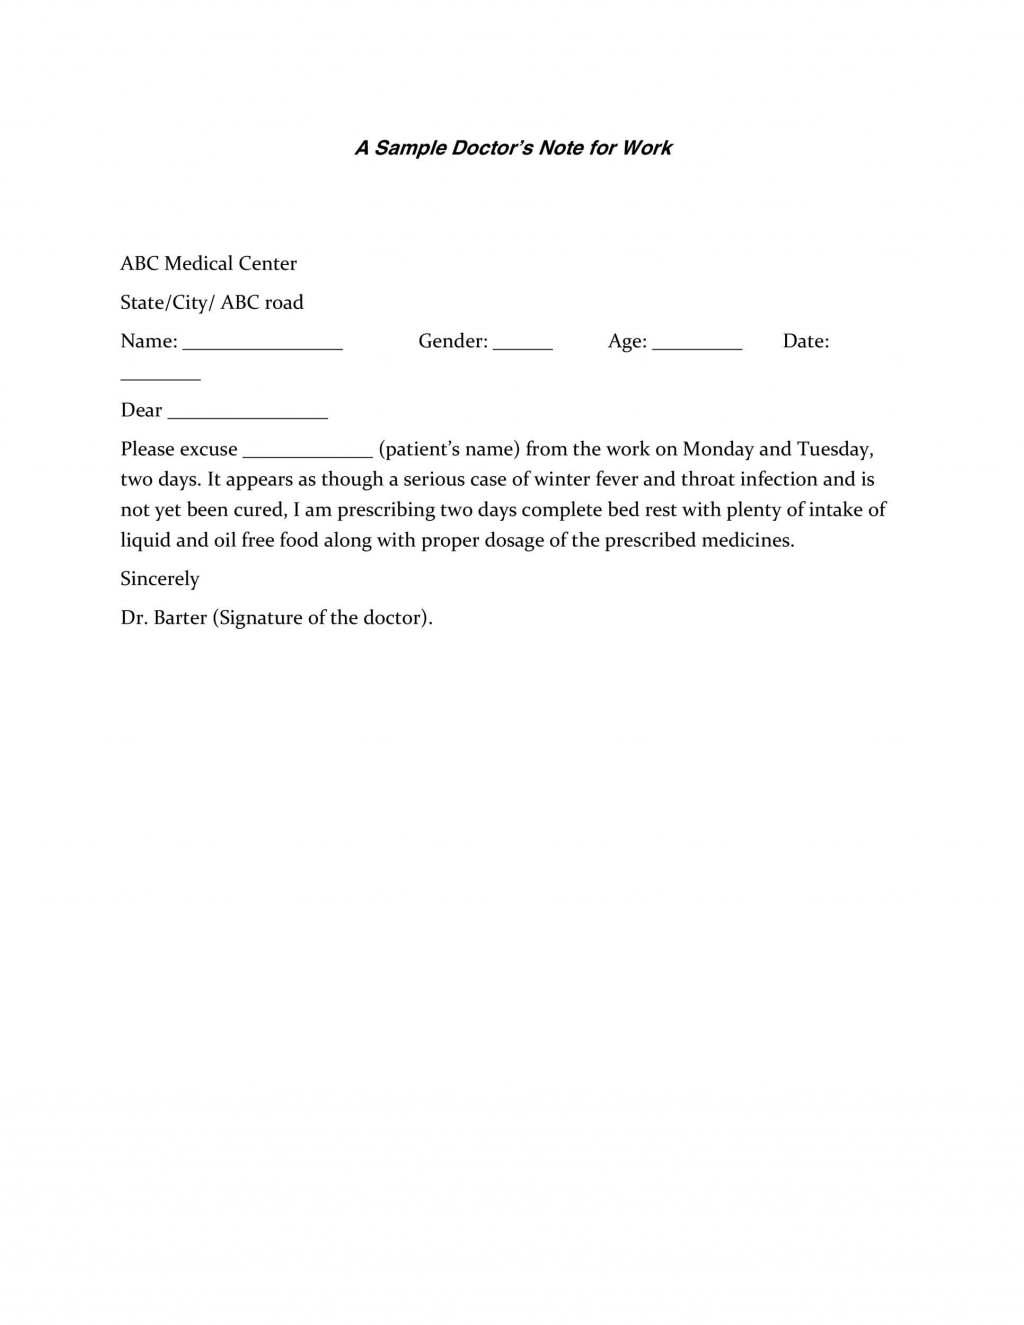 007 Sensational Doctor Note For Work Template Photo  Doctor' Missing Excuse PdfLarge